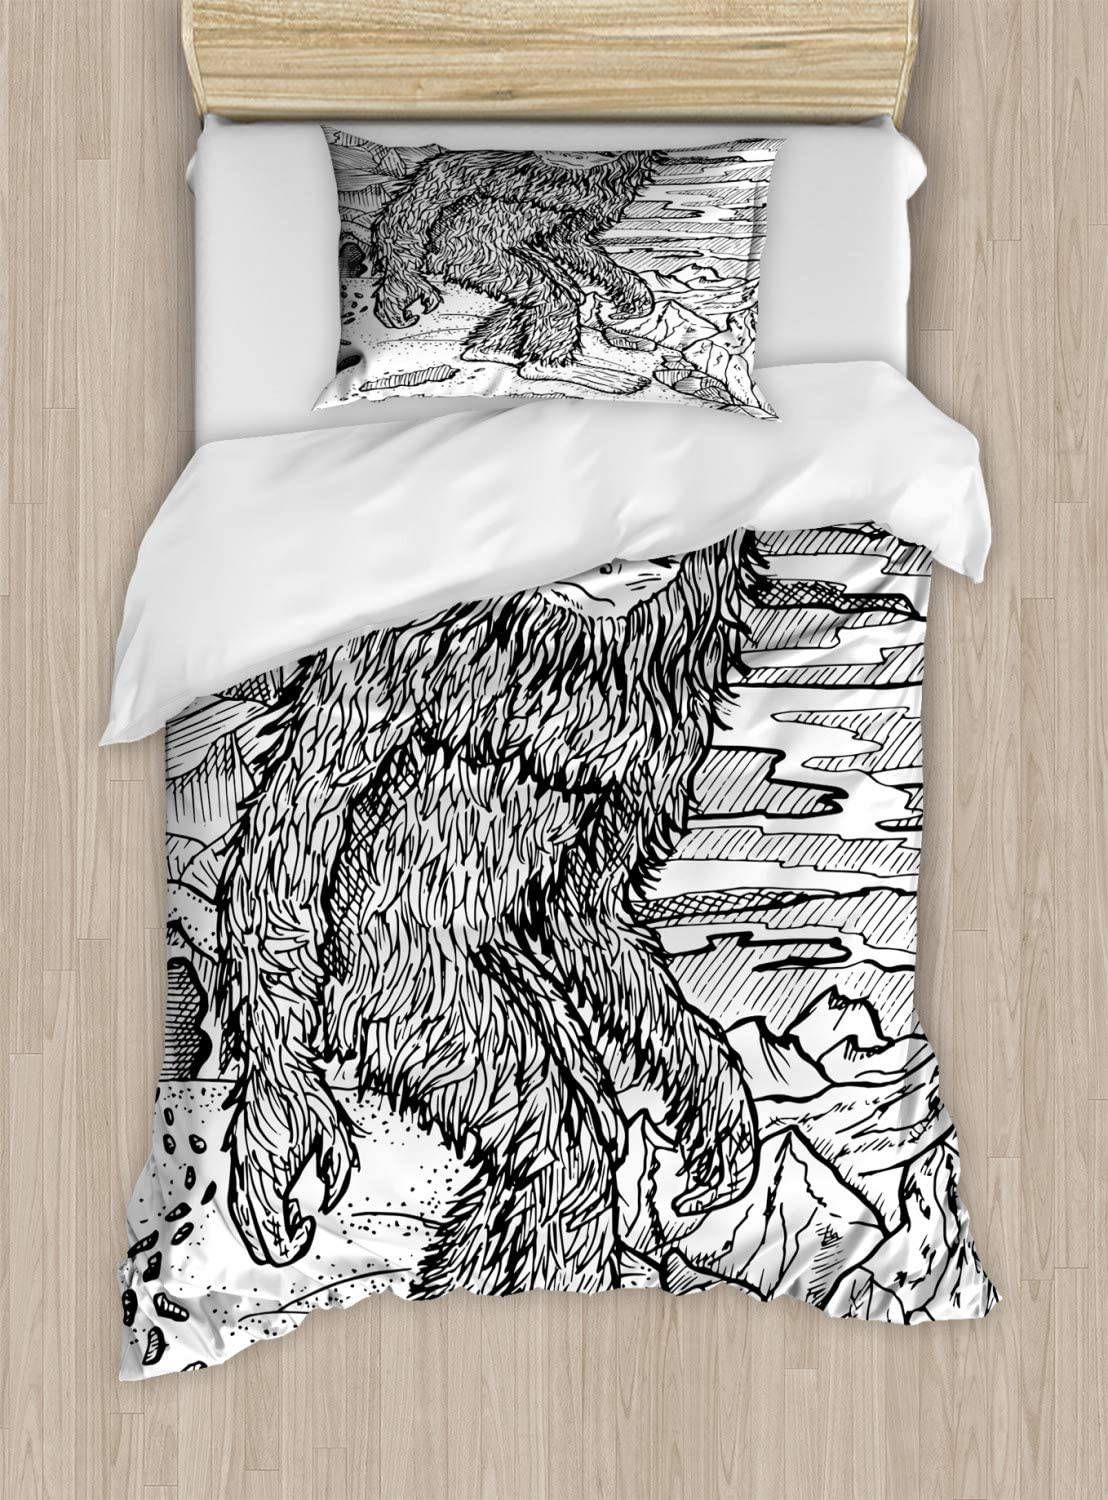 Ambesonne Bigfoot Duvet Cover Set, Mythical Creature Snowman on The Hills Leaving Footprints Behind Him, Decorative 2 Piece Bedding Set with 1 Pillow Sham, Twin Size, Black Print